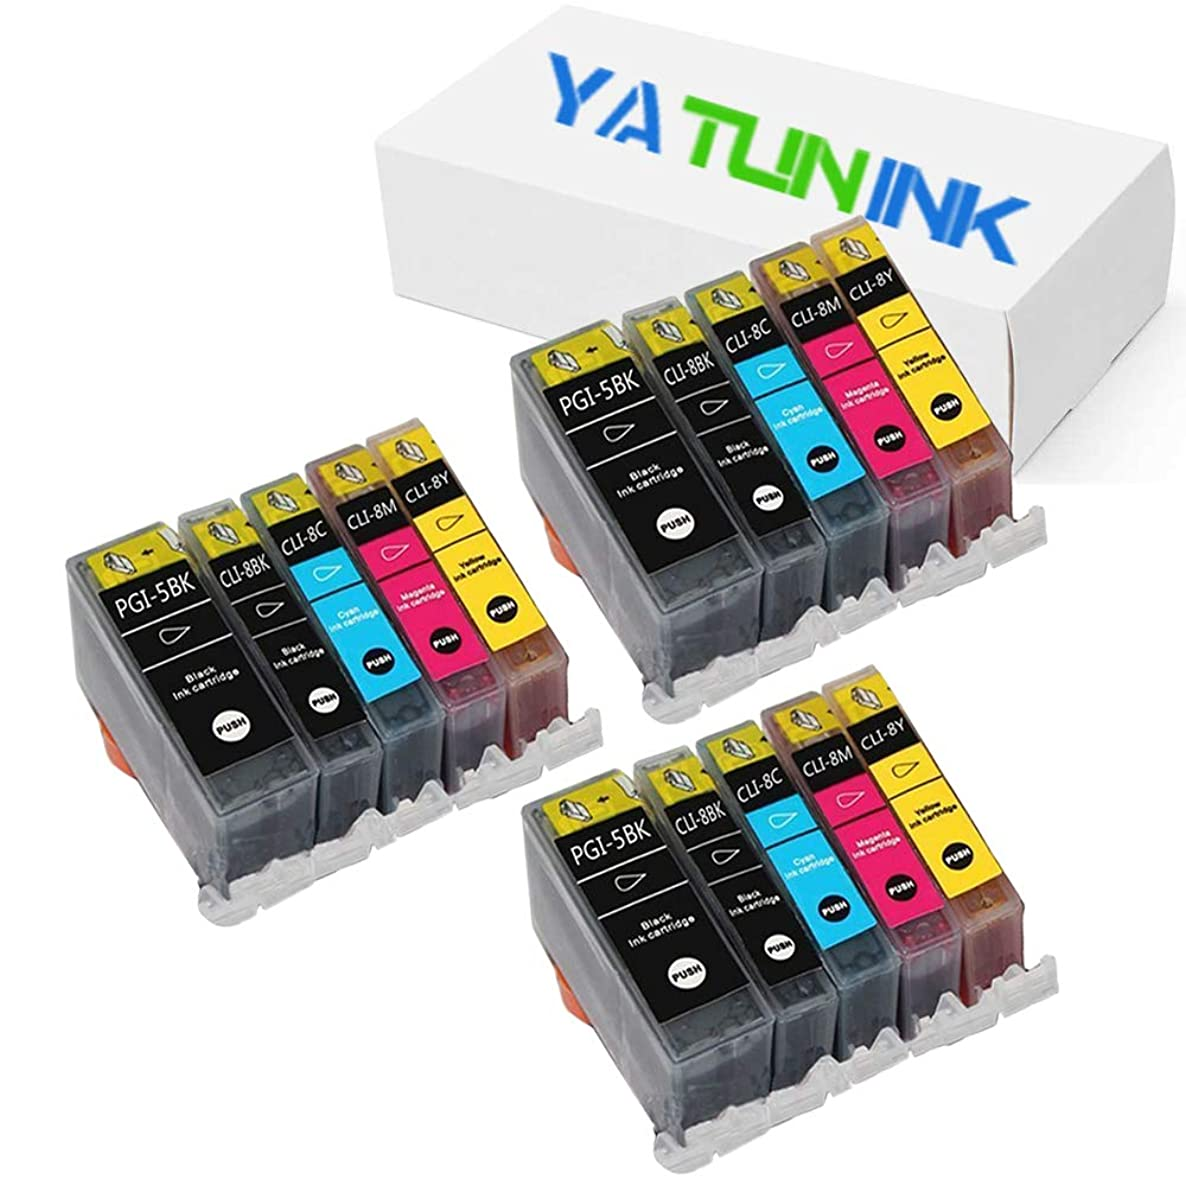 YATUNINK Compatible Ink Cartridge Replacement for Canon PGI-5BK CLI-8BK CLI-8C CLI-8M CLI-8Y Compatible Inkjet Cartridge with Chip for Pixma MP500 MP530 MP600 MP800 (15 Pack)